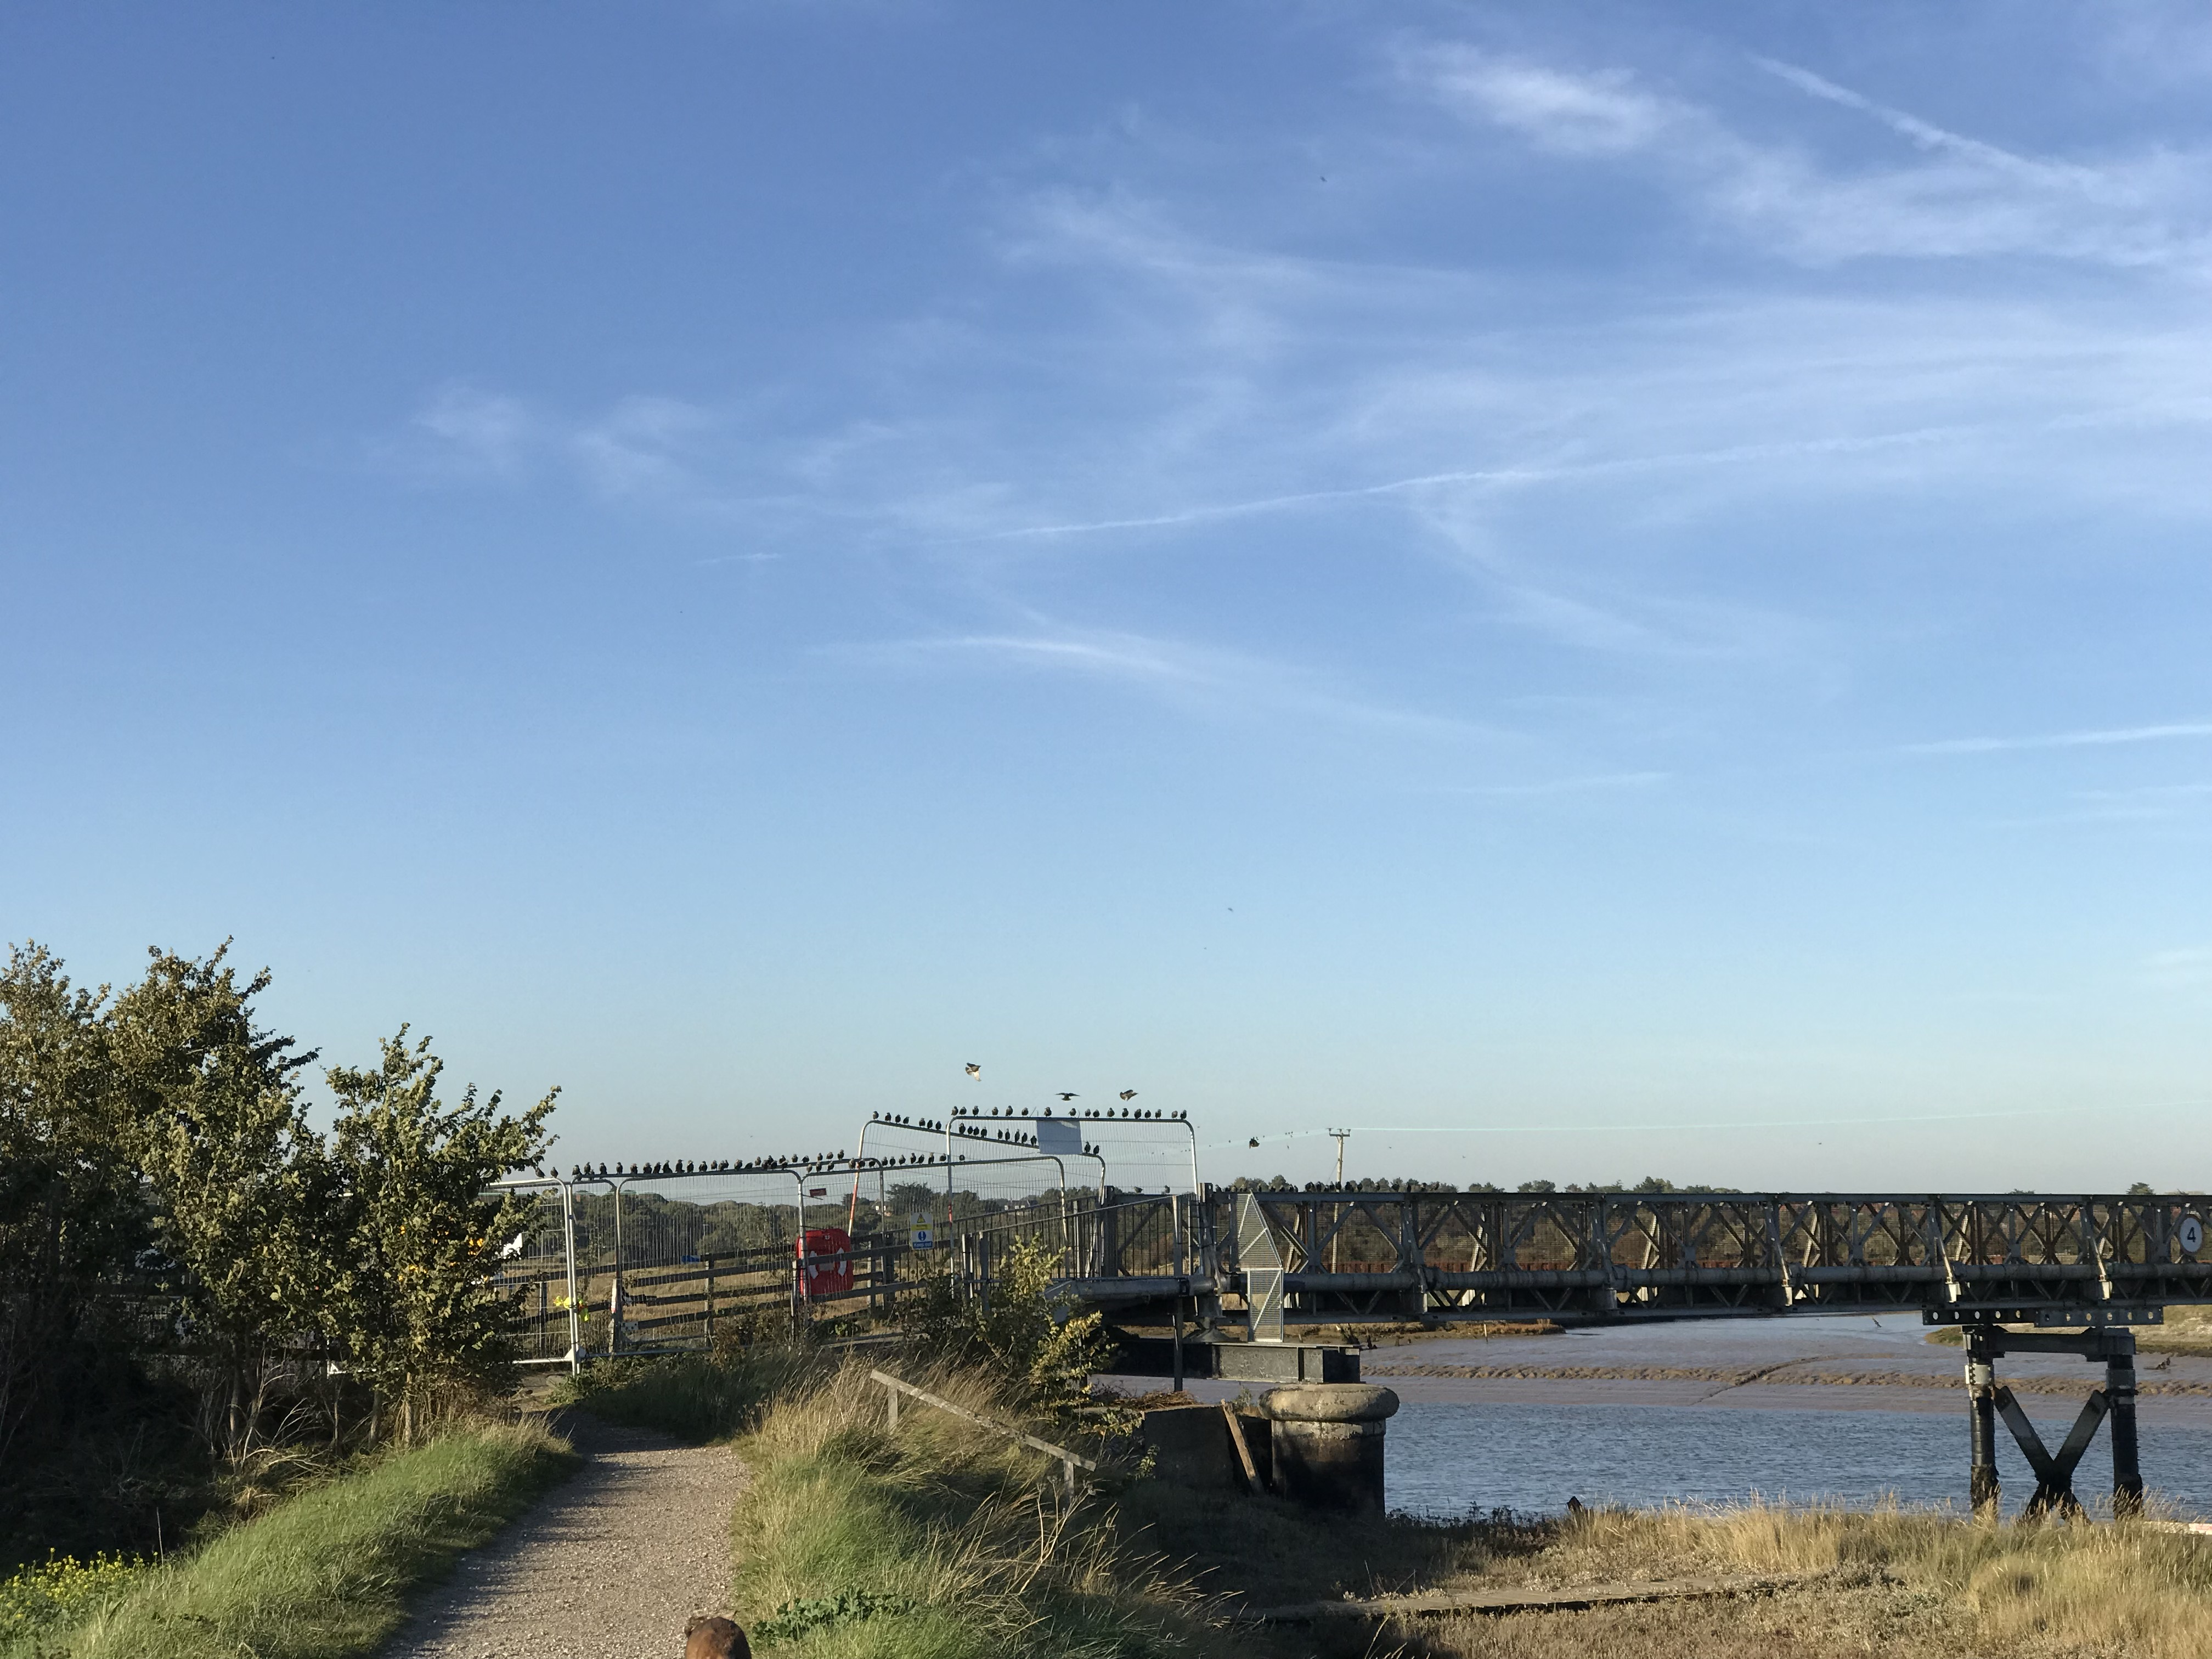 29th October - Bailey Bridge Update